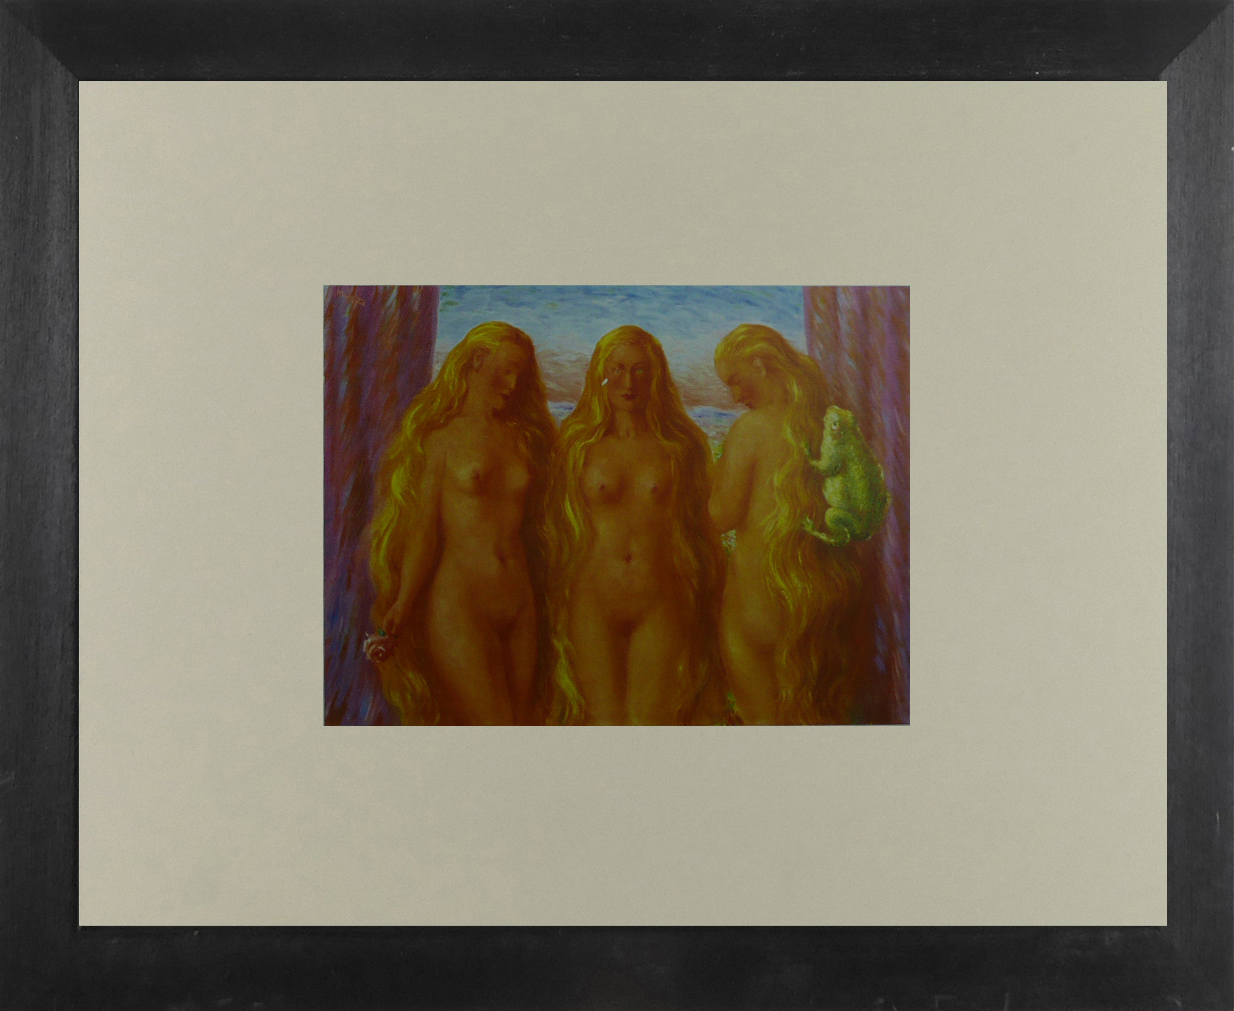 The Sea of Flames - Ren Magritte - Framed Picture 11 x 14